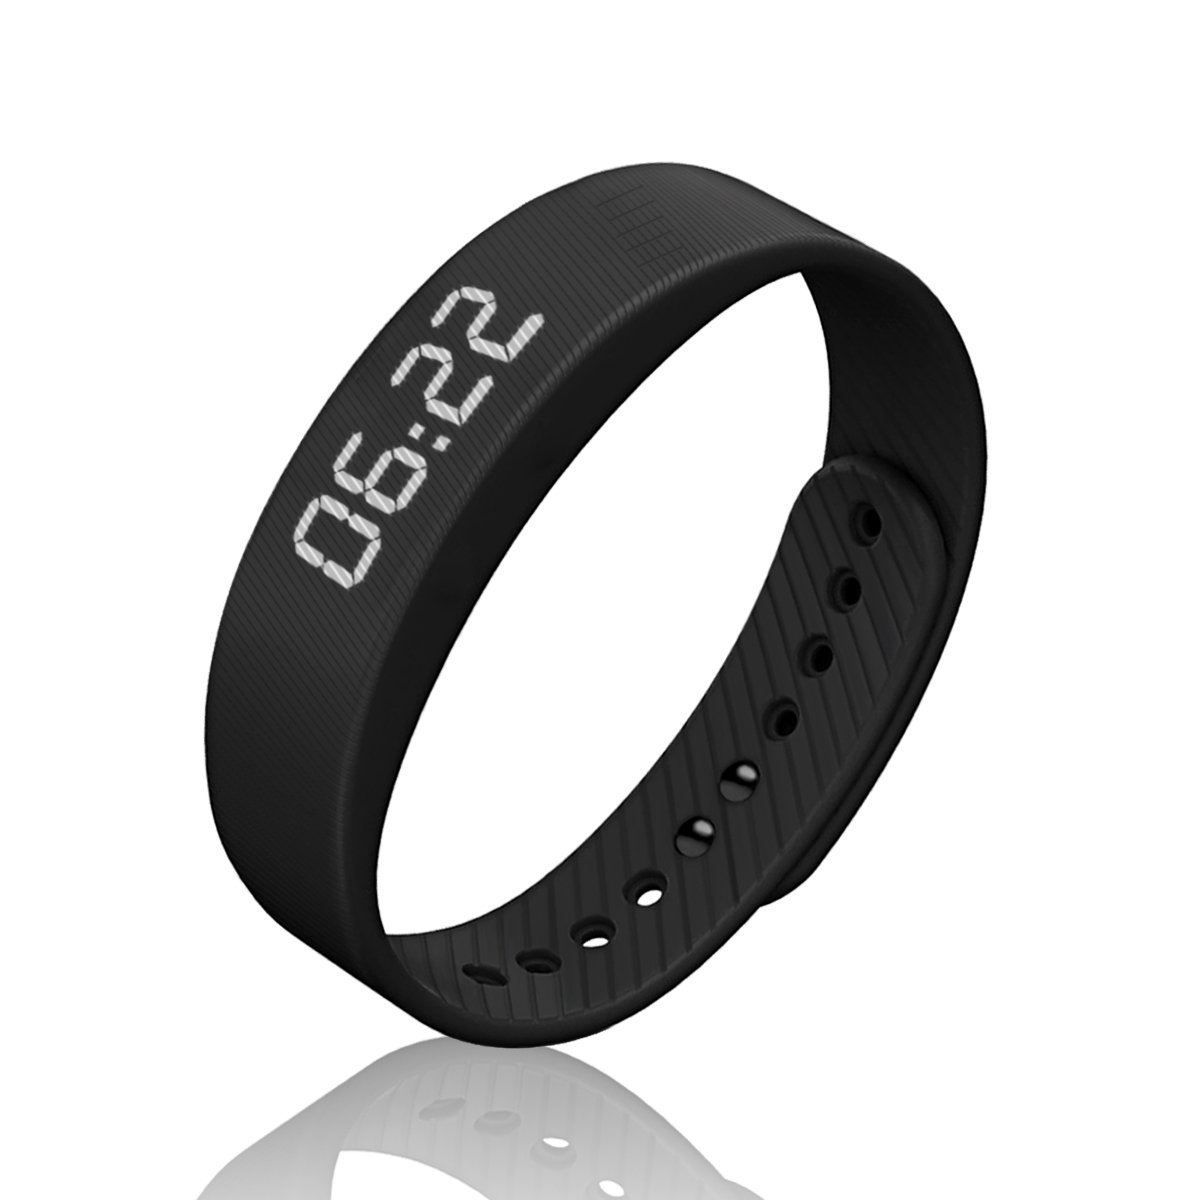 Cellay Activity Tracker – Multifunction Pedometer Bracelet – Waterproof Smart Wristband